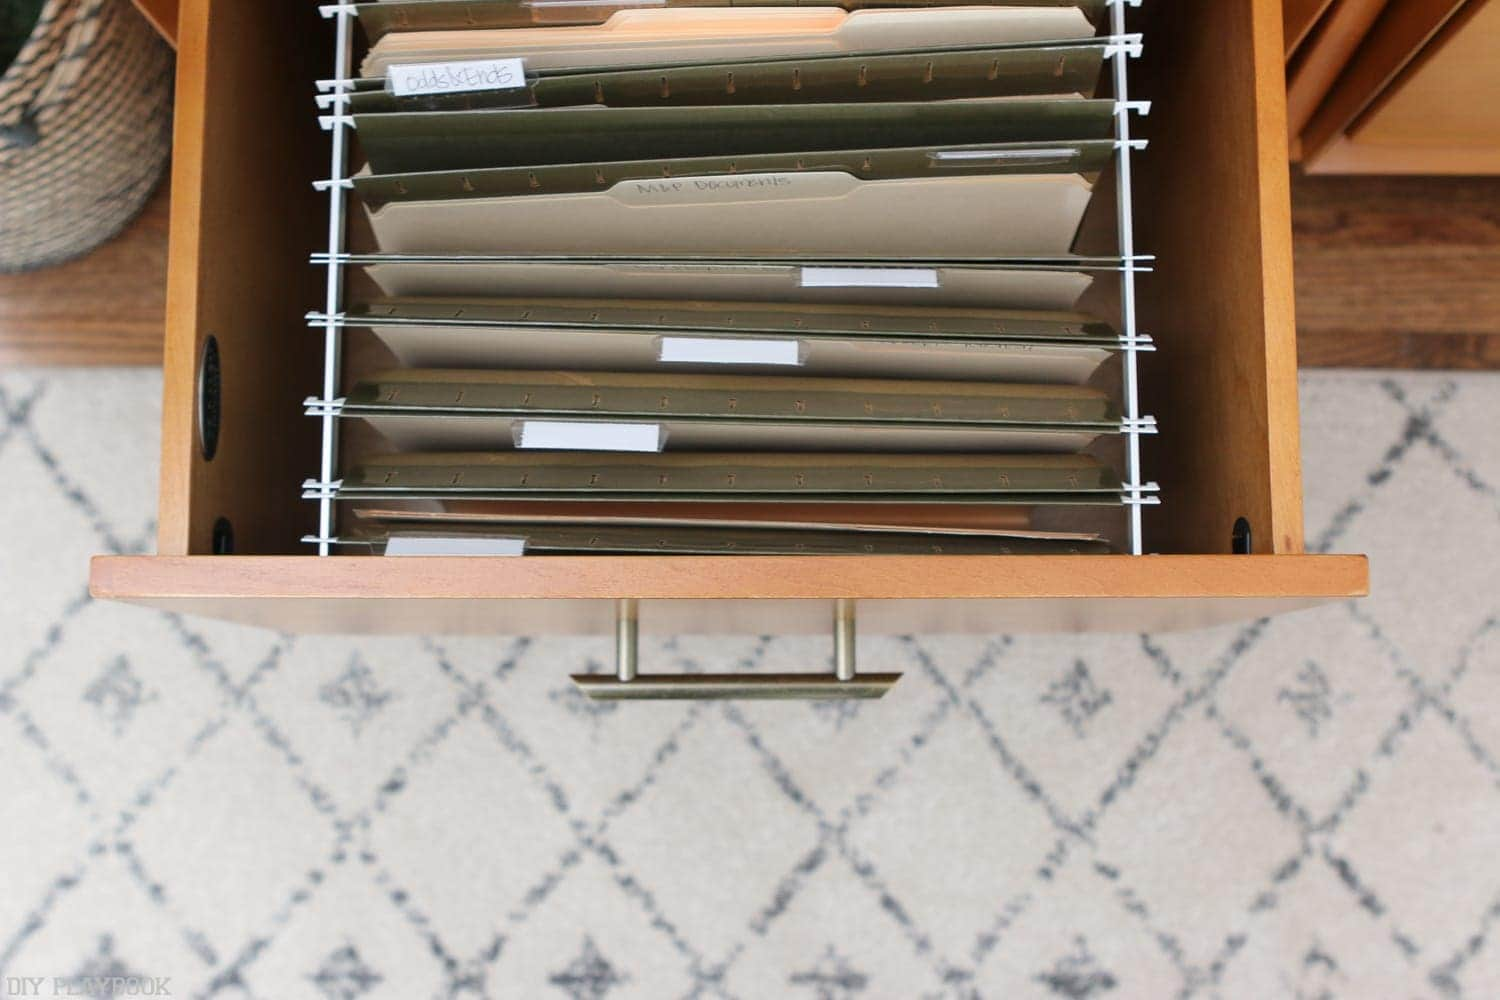 Hide file folders in these fantastic drawers